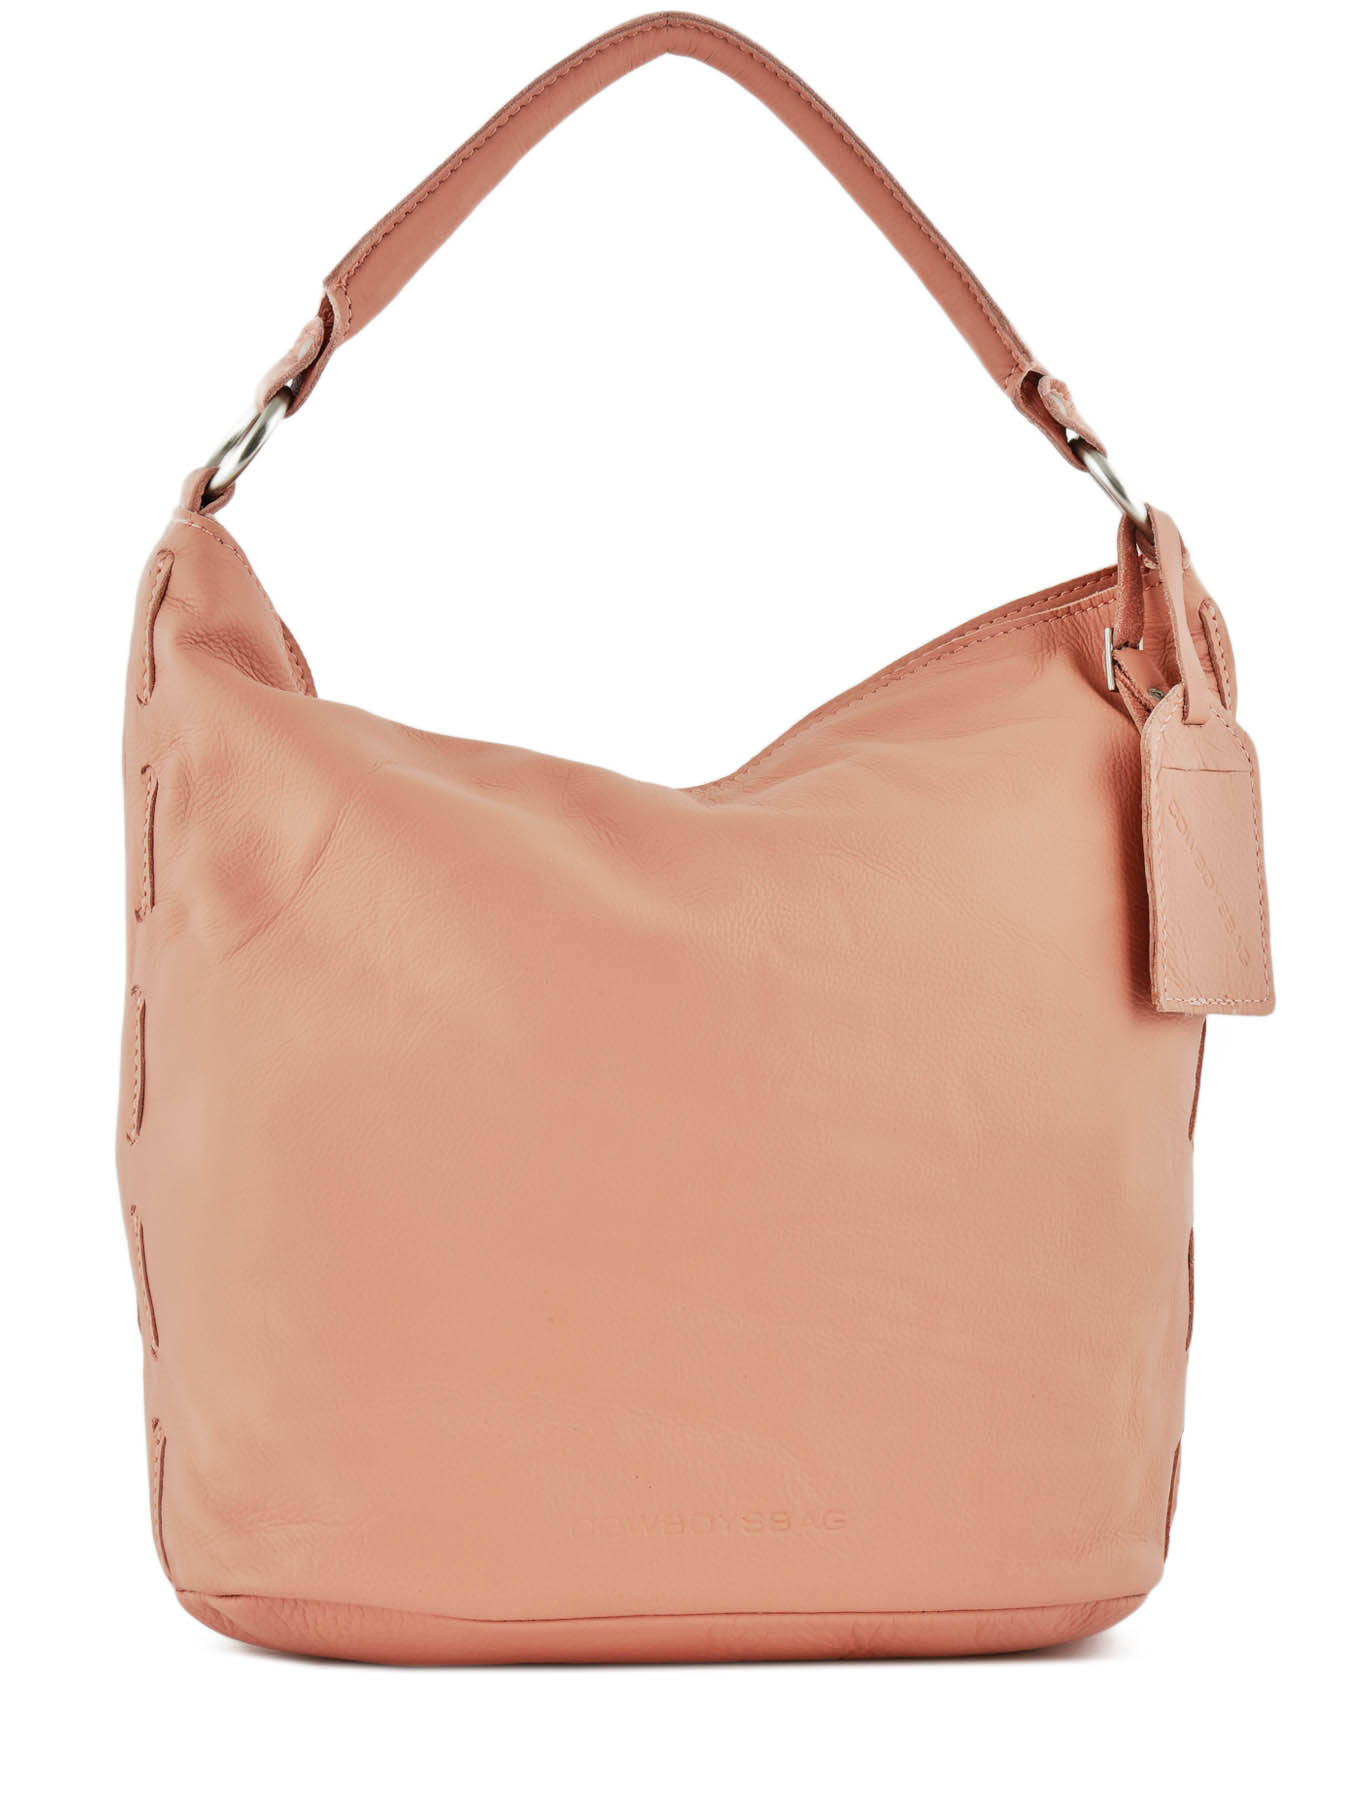 ae6937d24e ... Hobo Bag Connected Leather Cowboysbag Pink connected 2017 ...